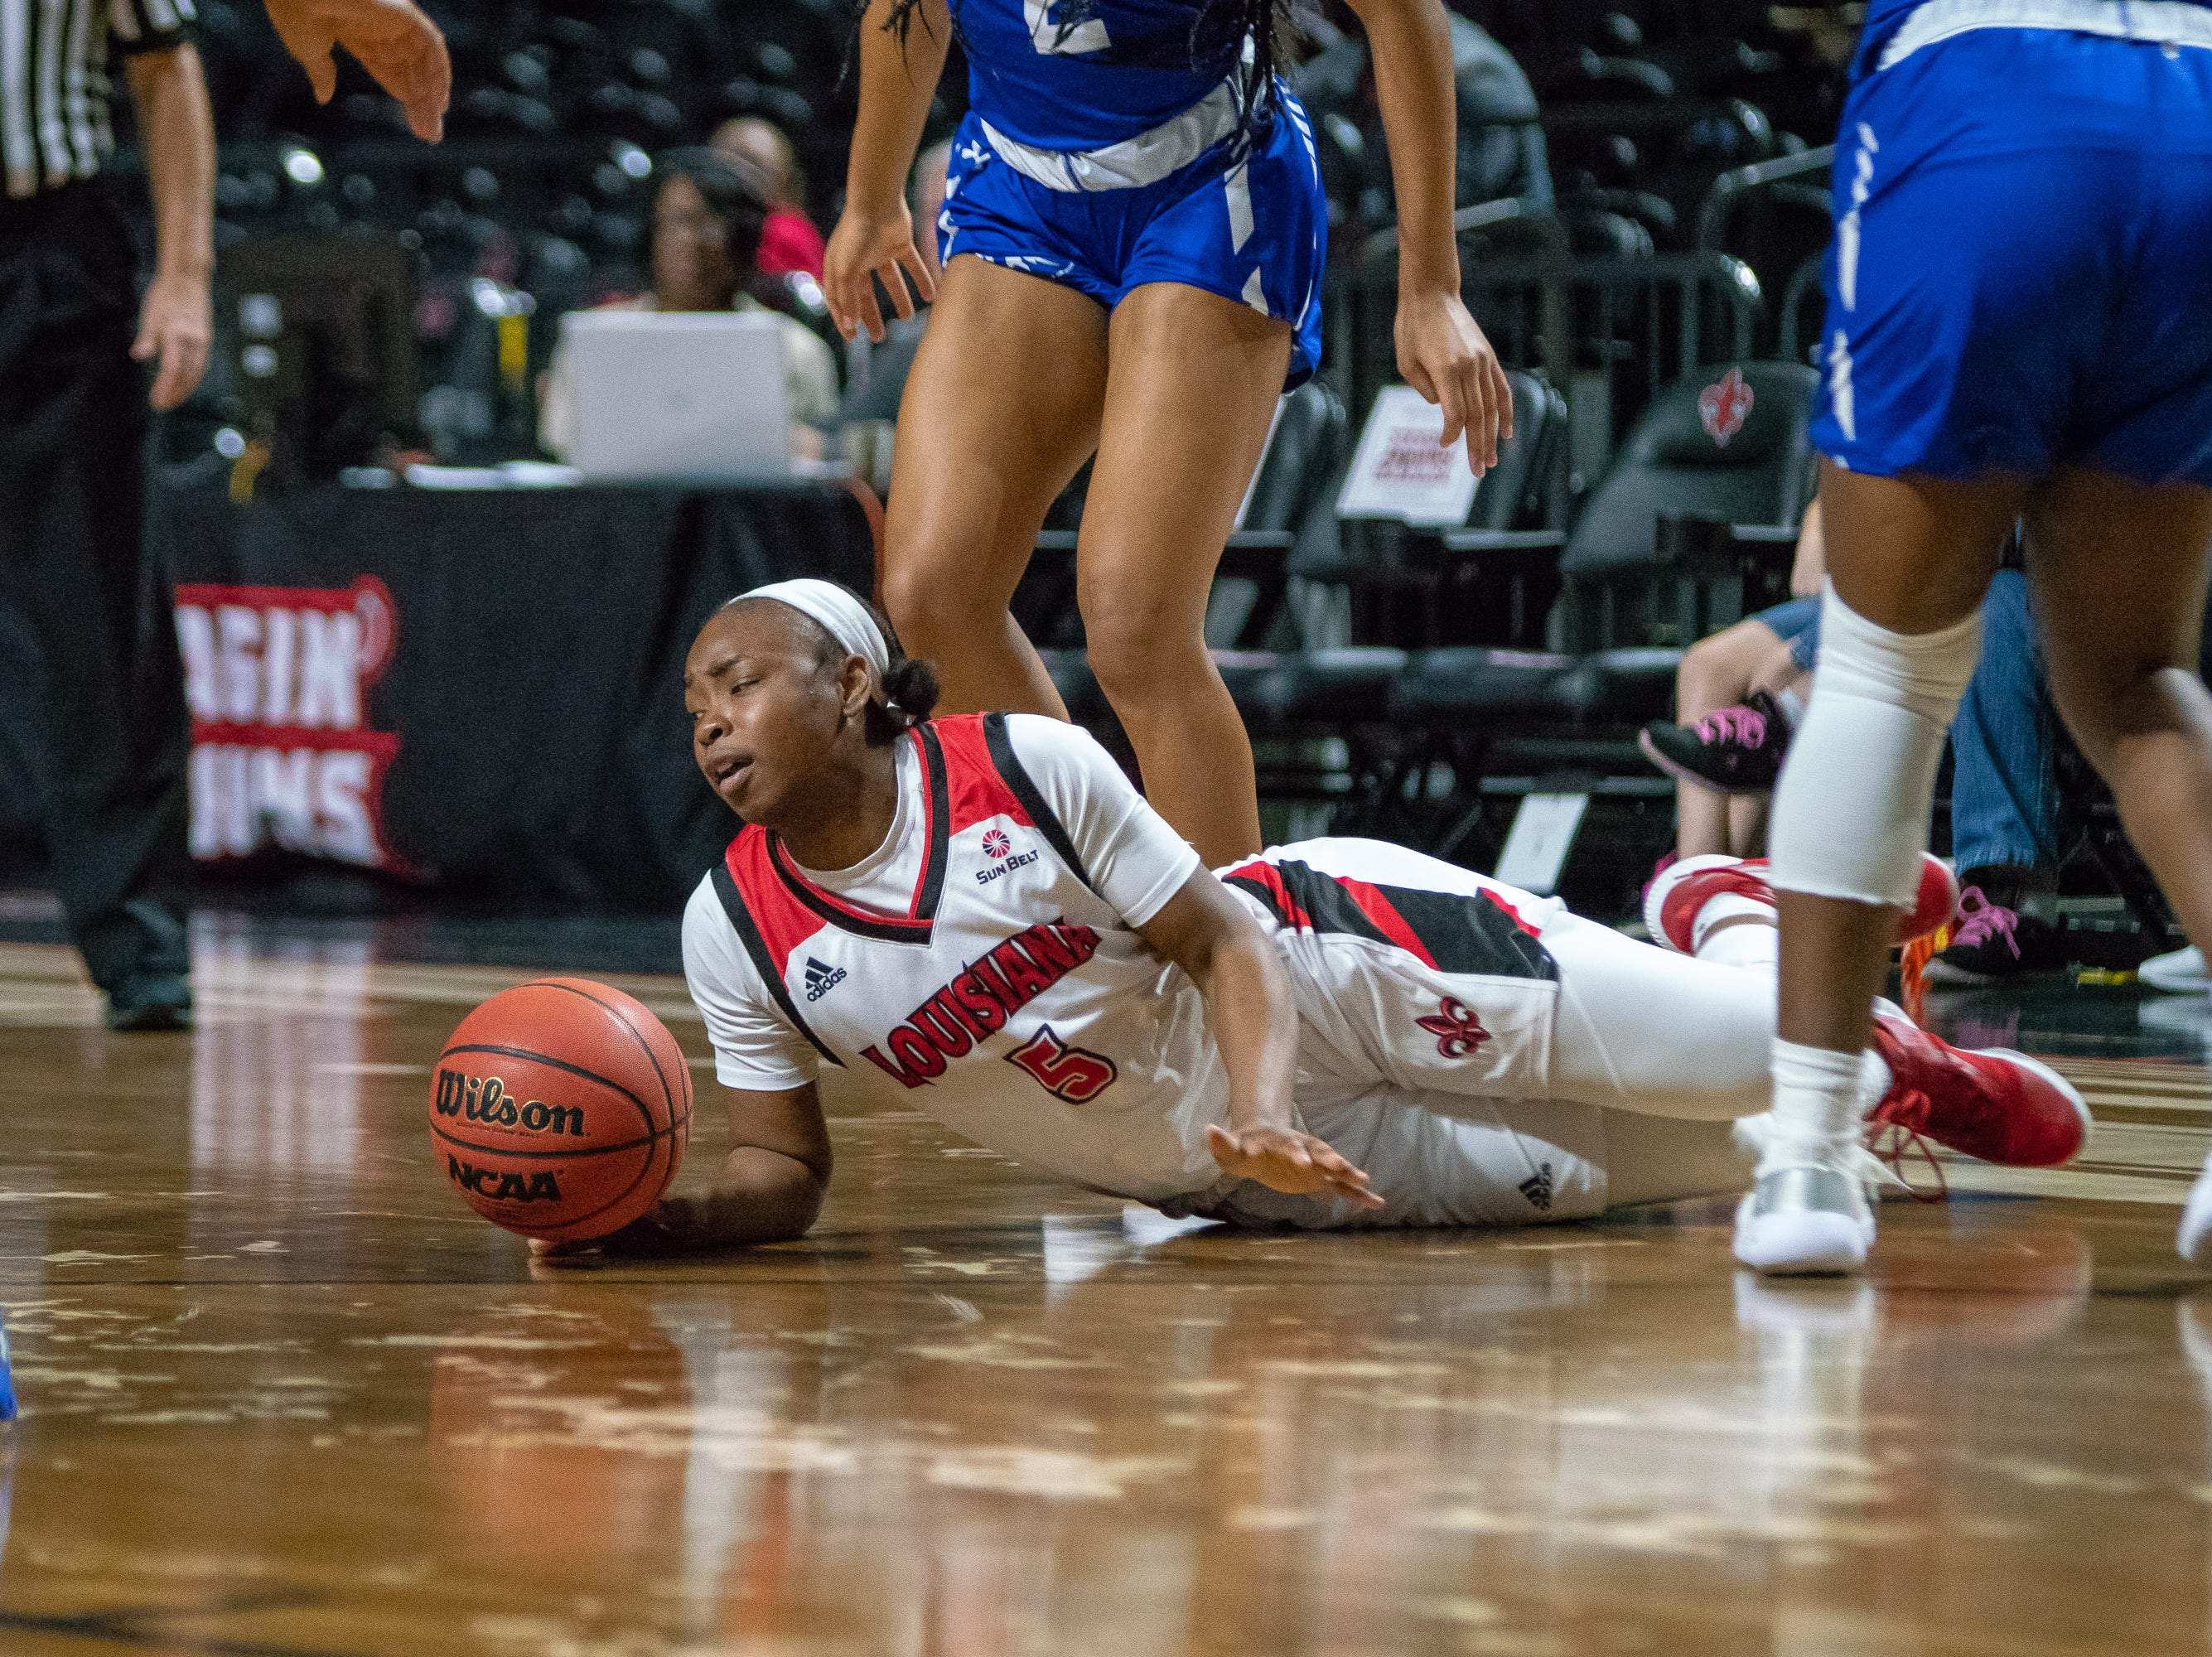 UL's Jomyra Mathis dives for the ball during the play as the Ragin' Cajuns play against the Georgia State Panthers at the Cajundome on January 10, 2019.